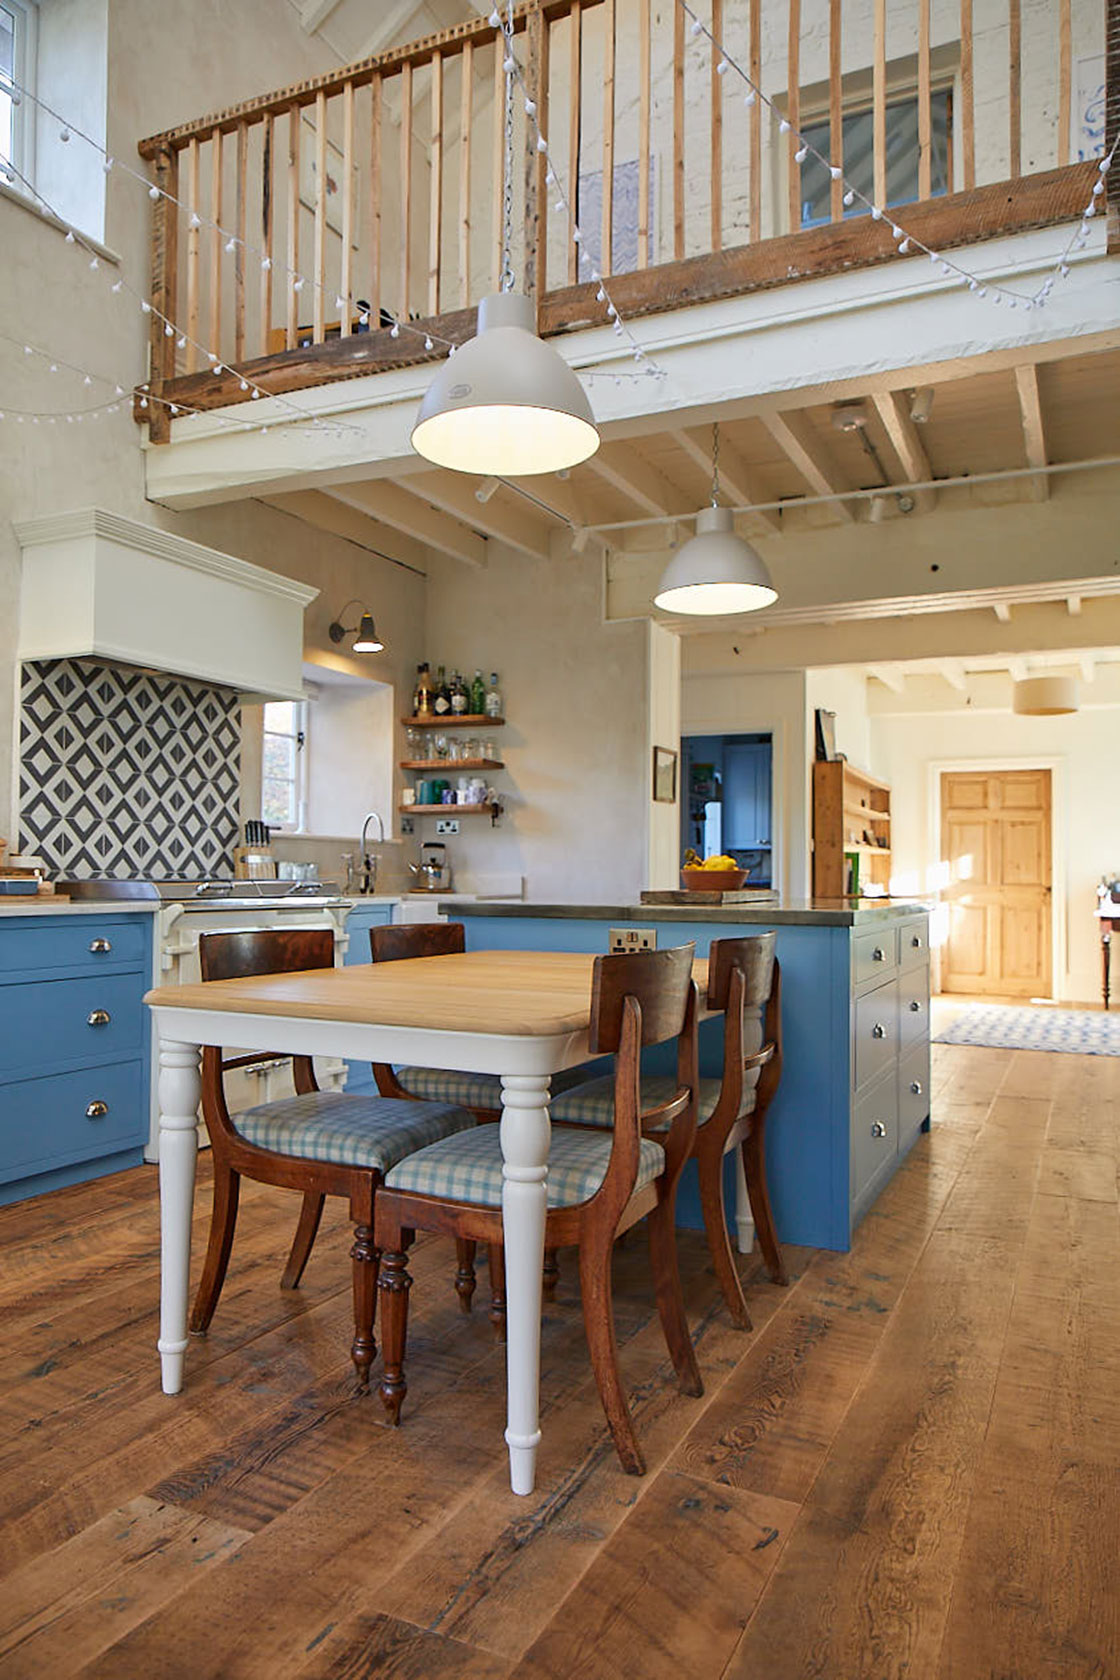 Painted farmhouse oak table next to light blue kitchen island